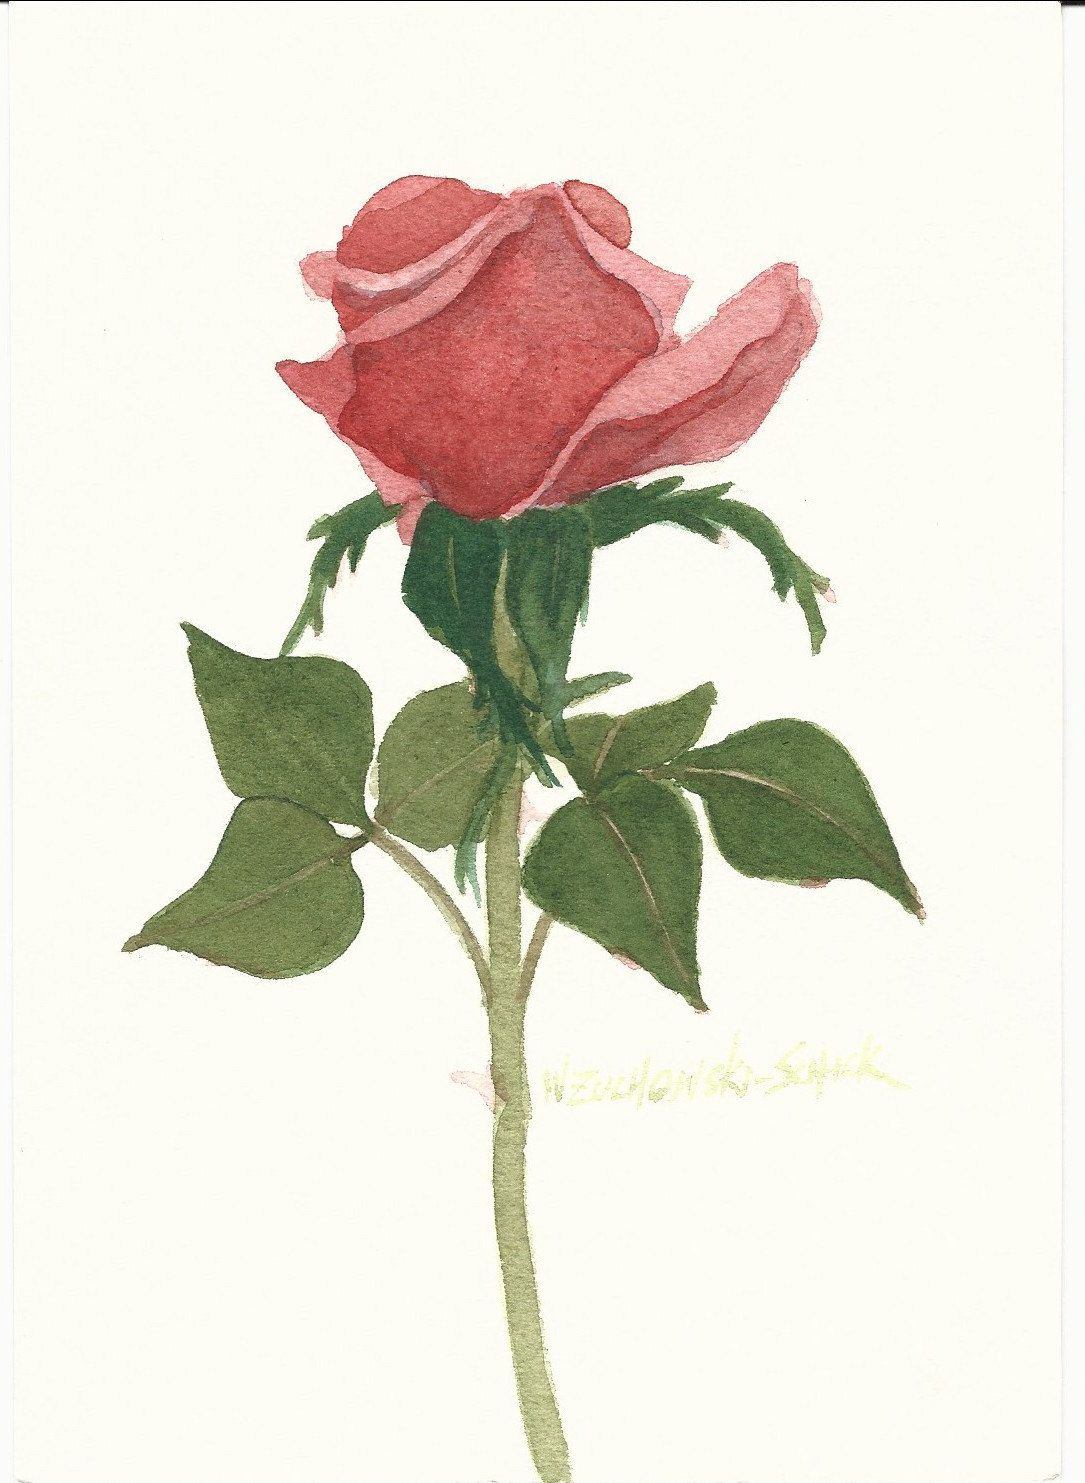 X Ray Of Rose Watercolor Amazing Tattoo For Me Yeti: Red Rose 5 X 7 Original Watercolor By Wandazuchowskischick